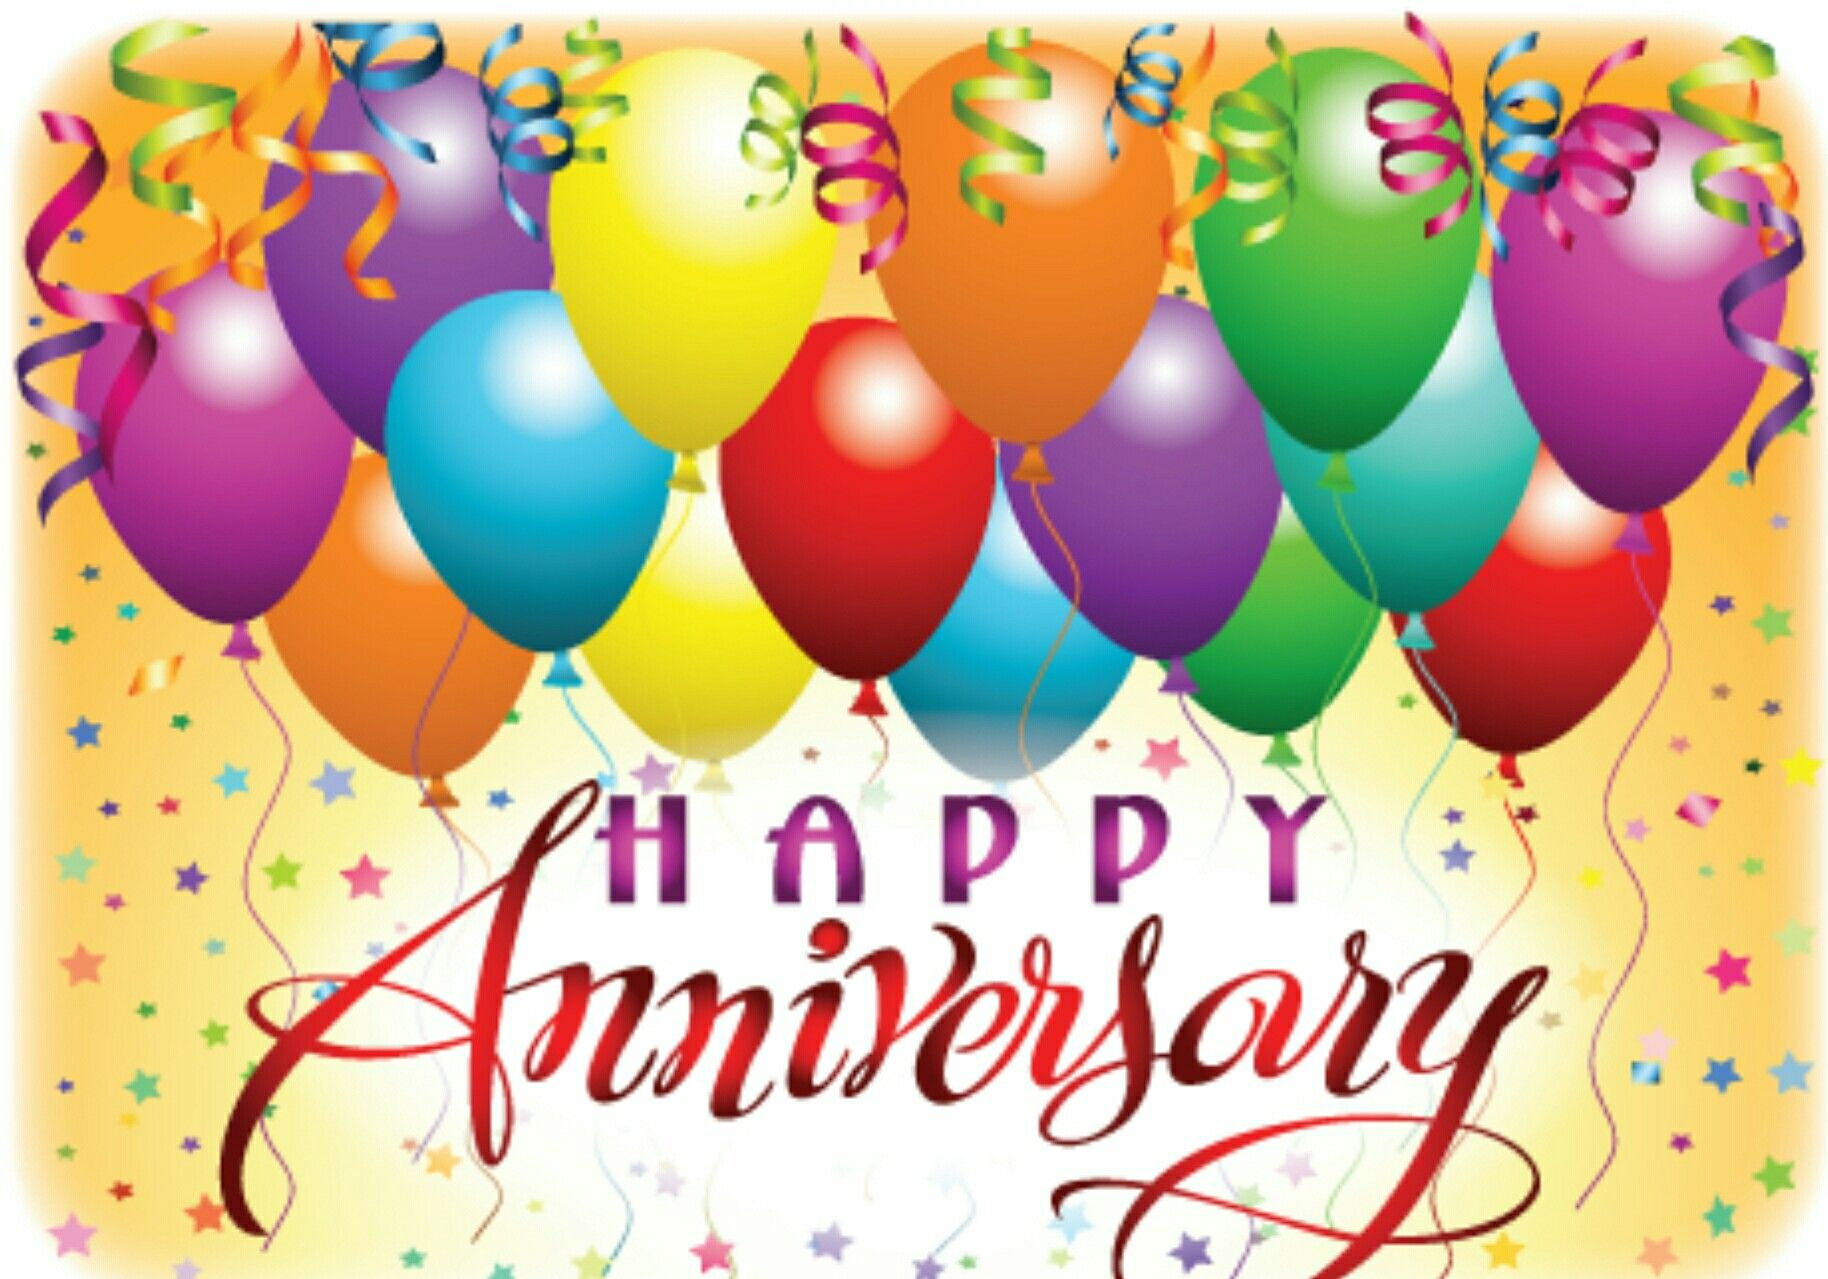 Happy anniversary work clipart svg freeuse download 75+ Happy Anniversary Work Pictures - HD Greetings Image Collection svg freeuse download